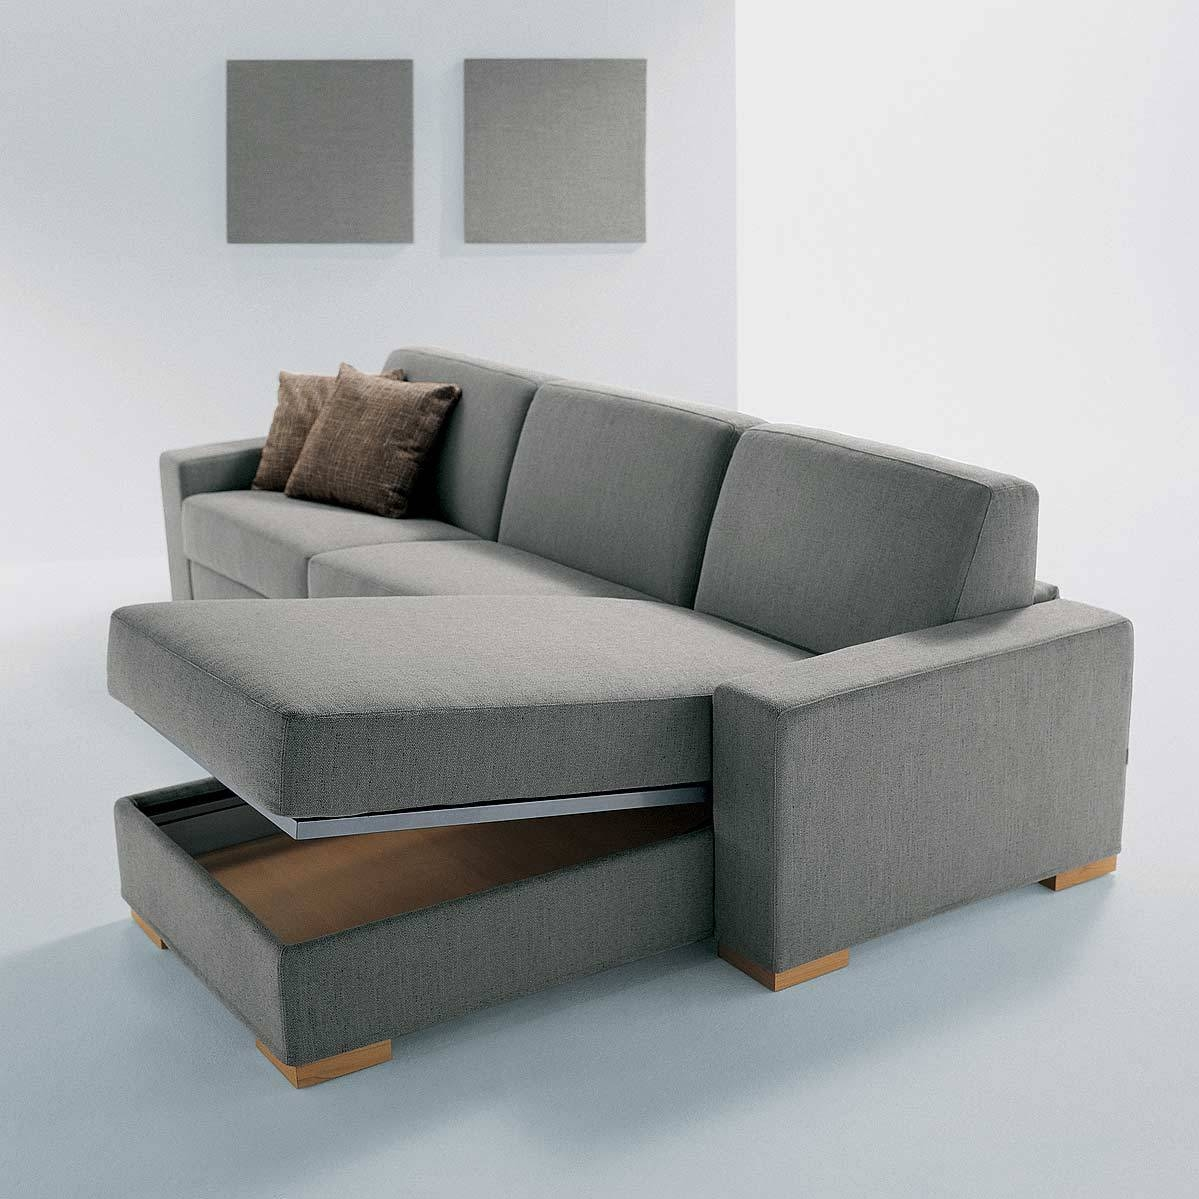 Convertible Sofa Bed With Storage – S3net – Sectional Sofas Sale Within Small Sectional Sofas With Storage (View 7 of 15)